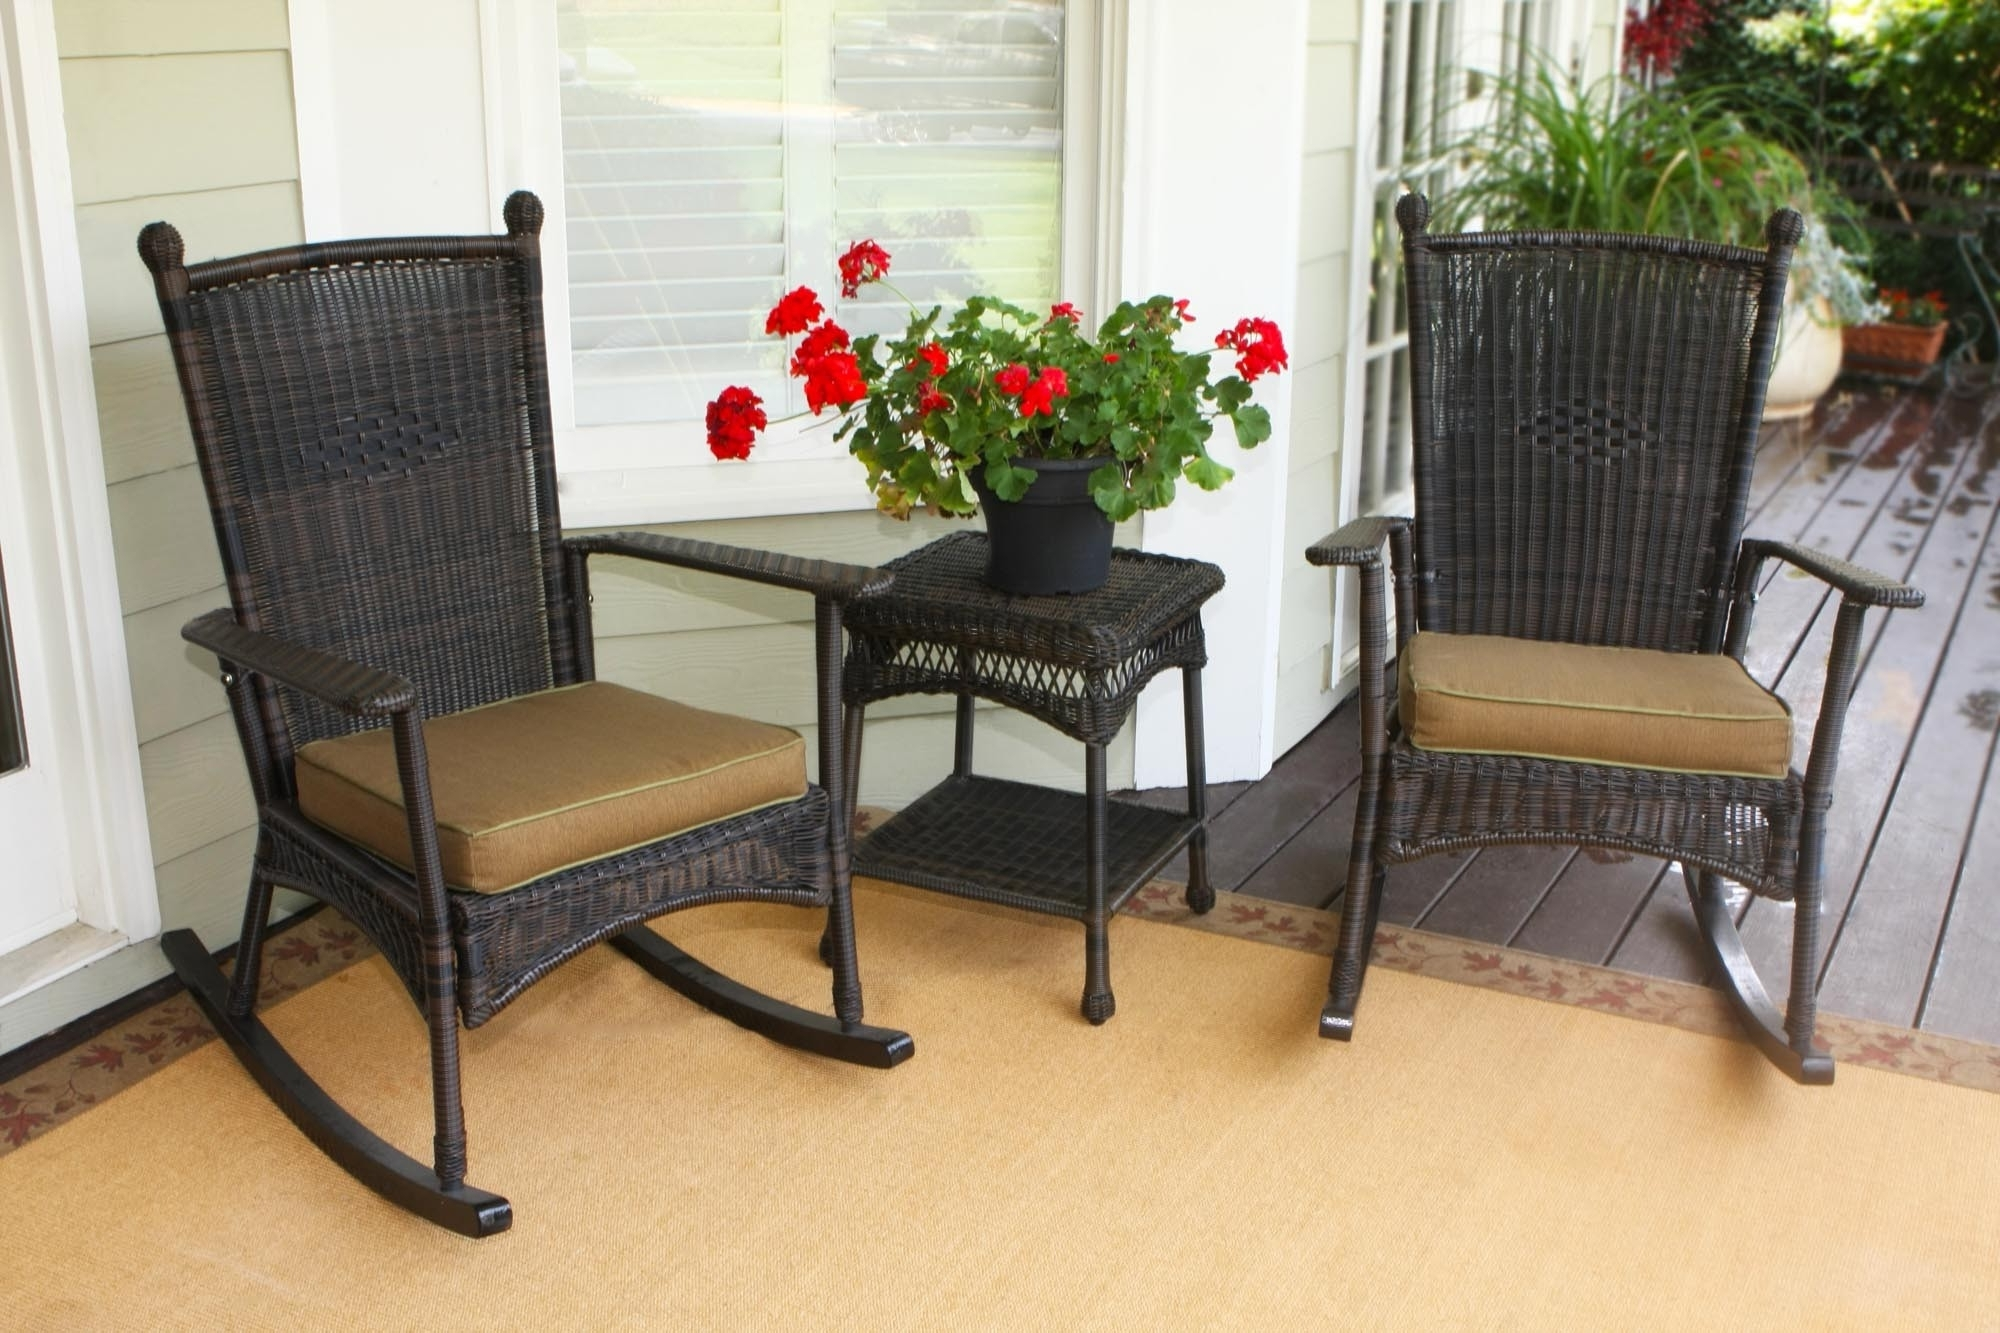 2019 Rocking Chairs – Tortuga Outdoor Of Georgia – Alpharetta Inside Outside Rocking Chair Sets (View 3 of 20)